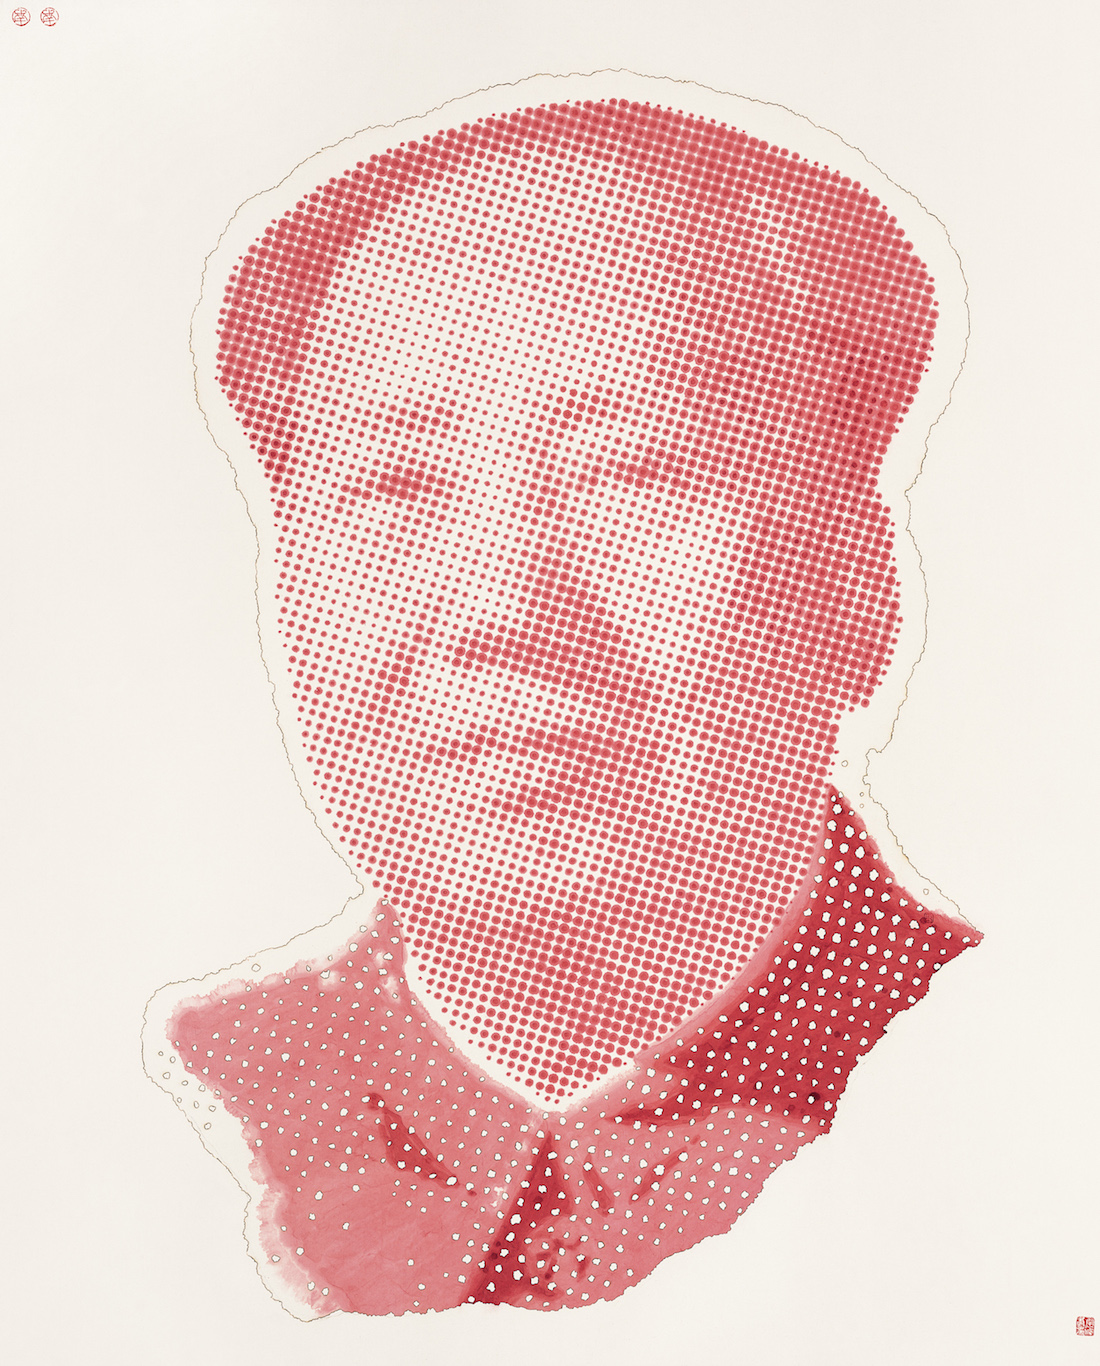 Red Portrait of Chairman Mao (红色毛主席像)